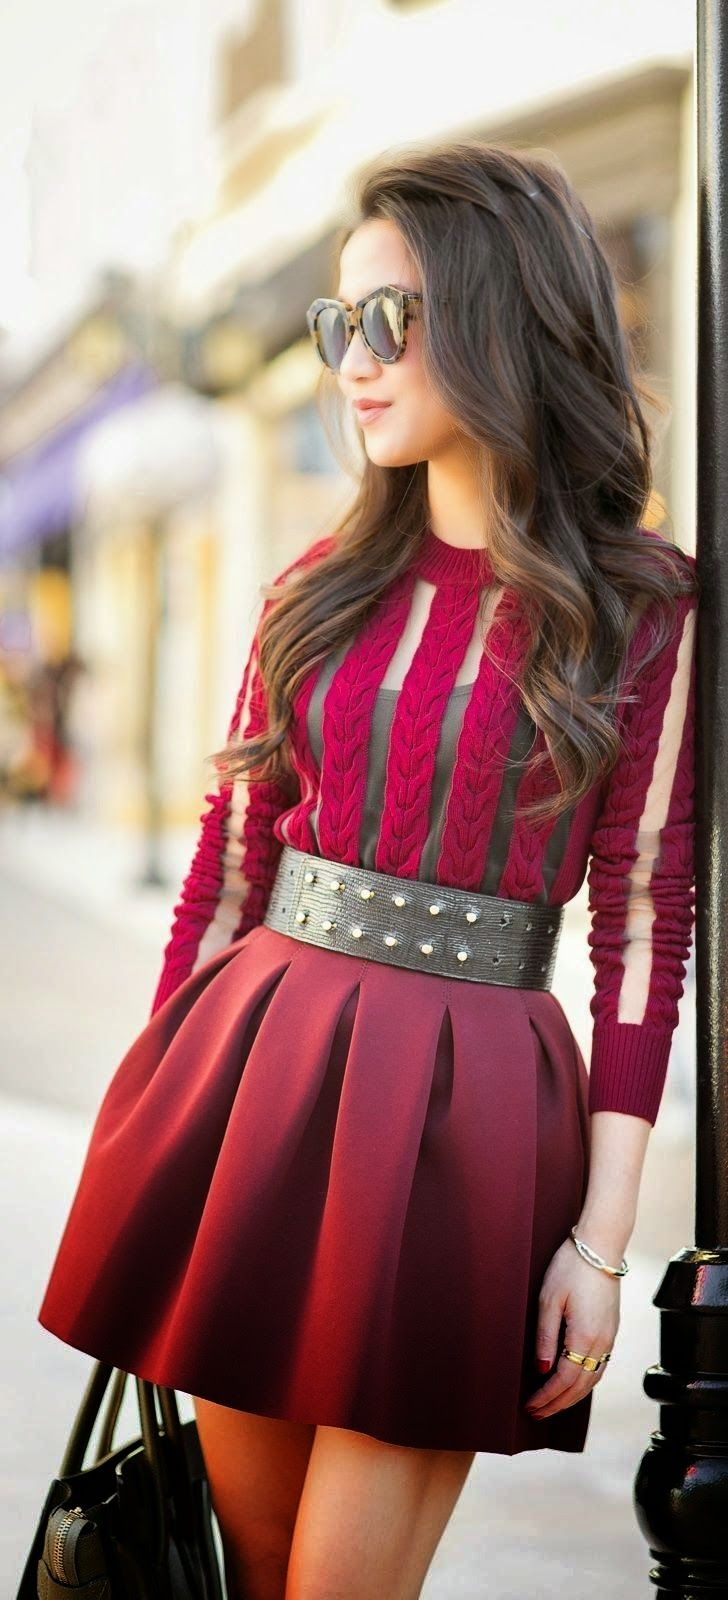 2019 year lifestyle- Red trend carpet full tulip skirts